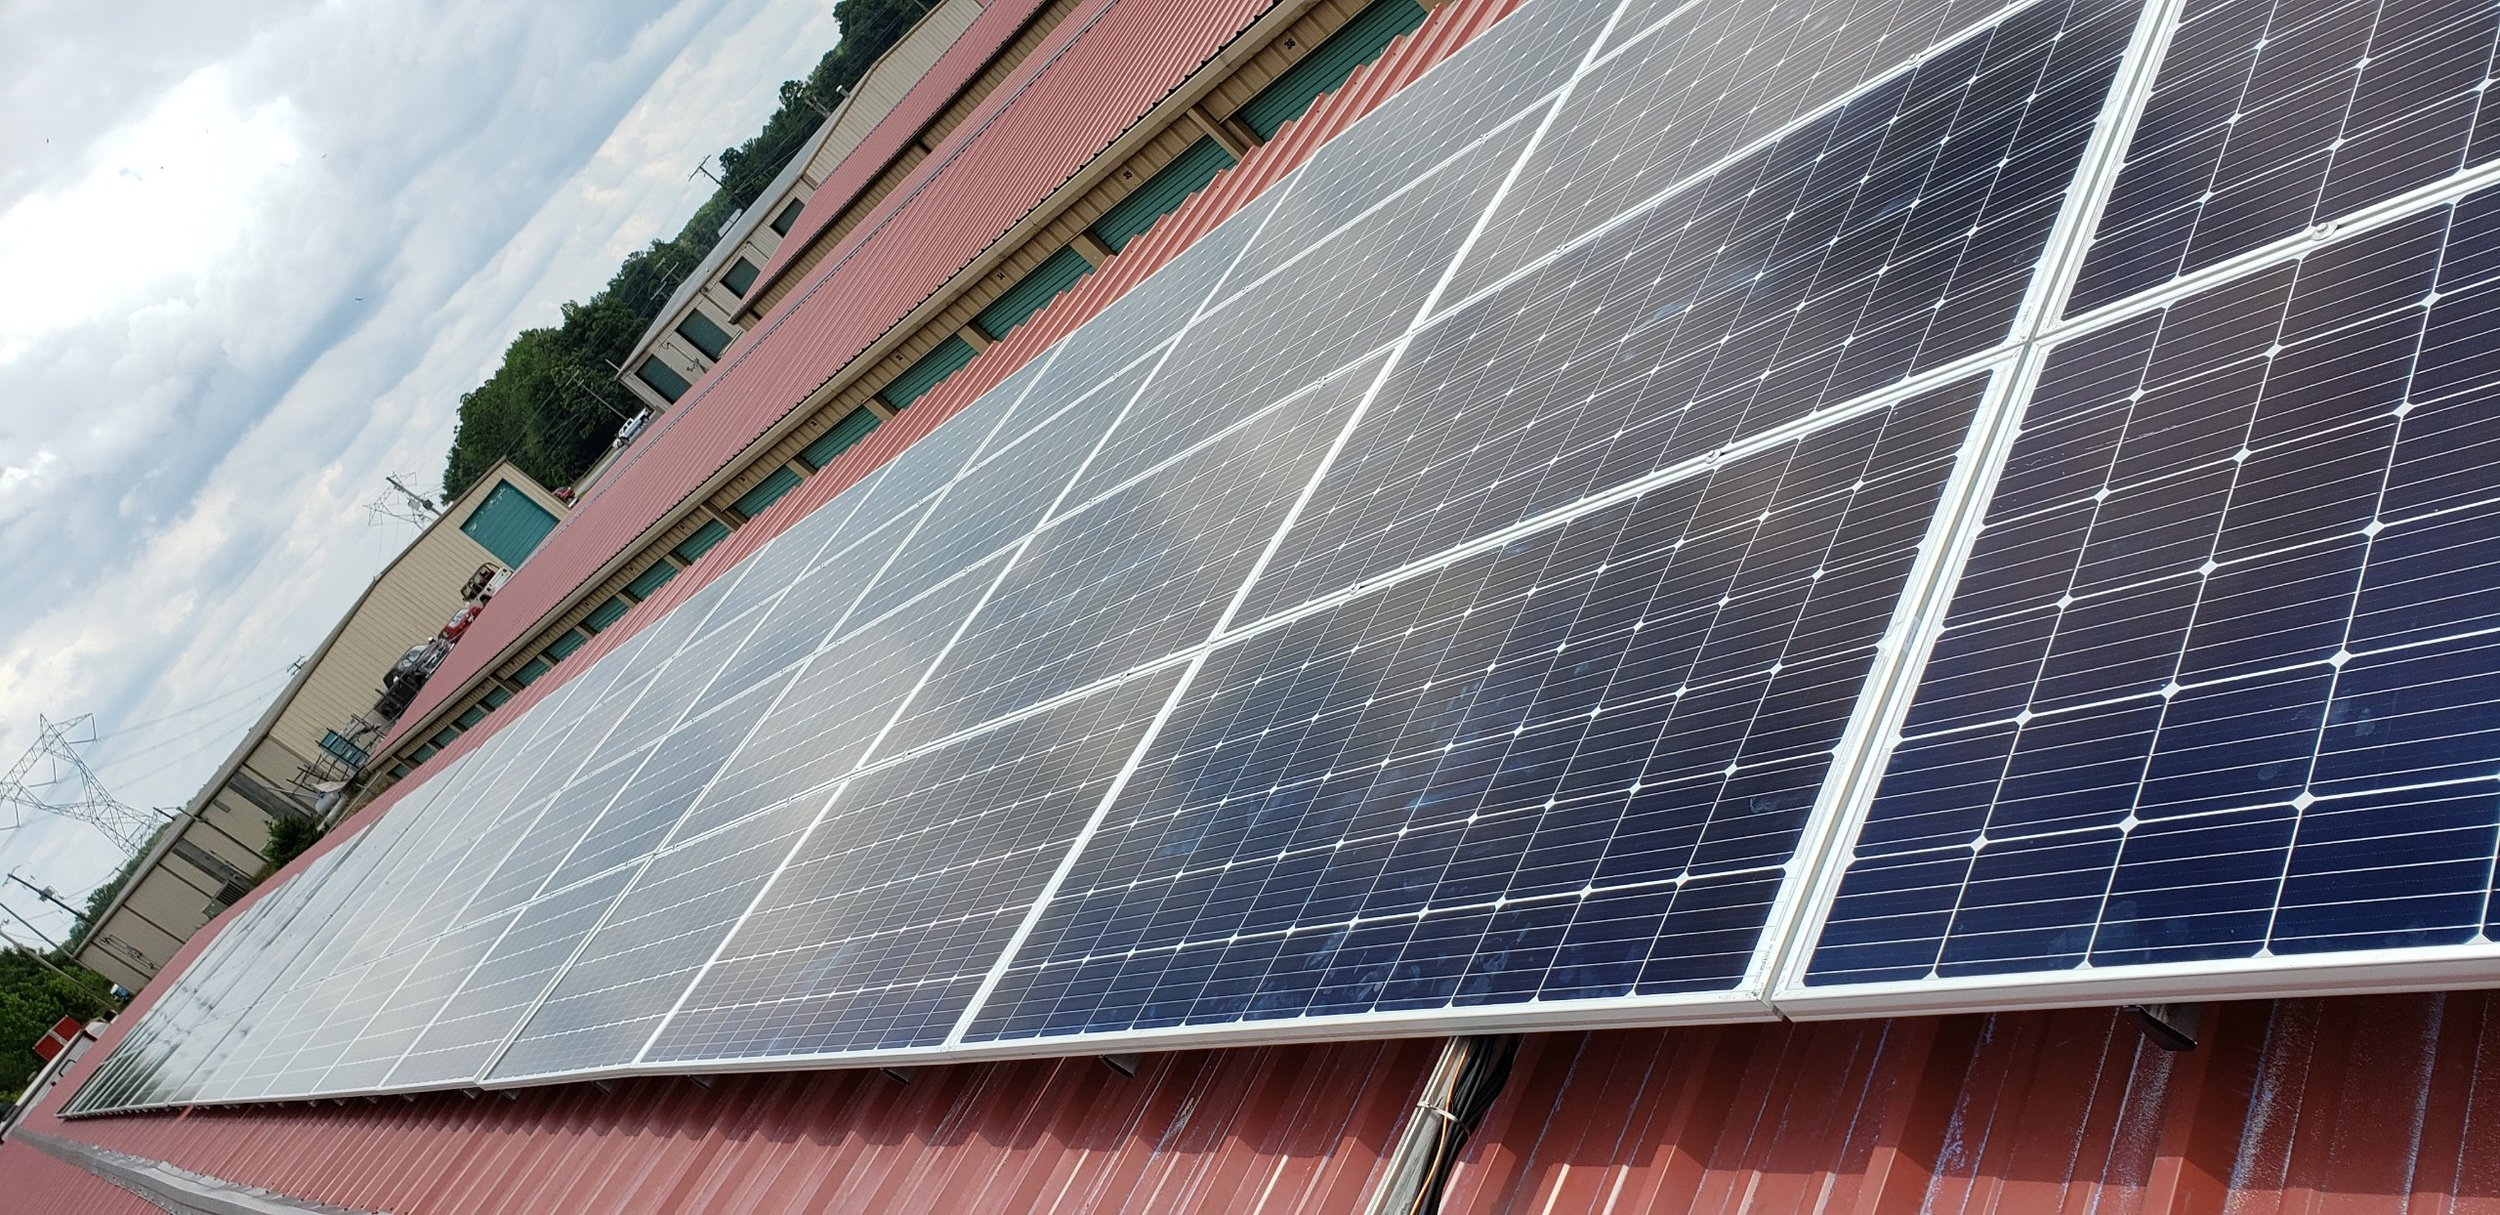 The majority of our energy requirements are produced by 80 solar panels installed on June 19, 2019 by Seal Solar.